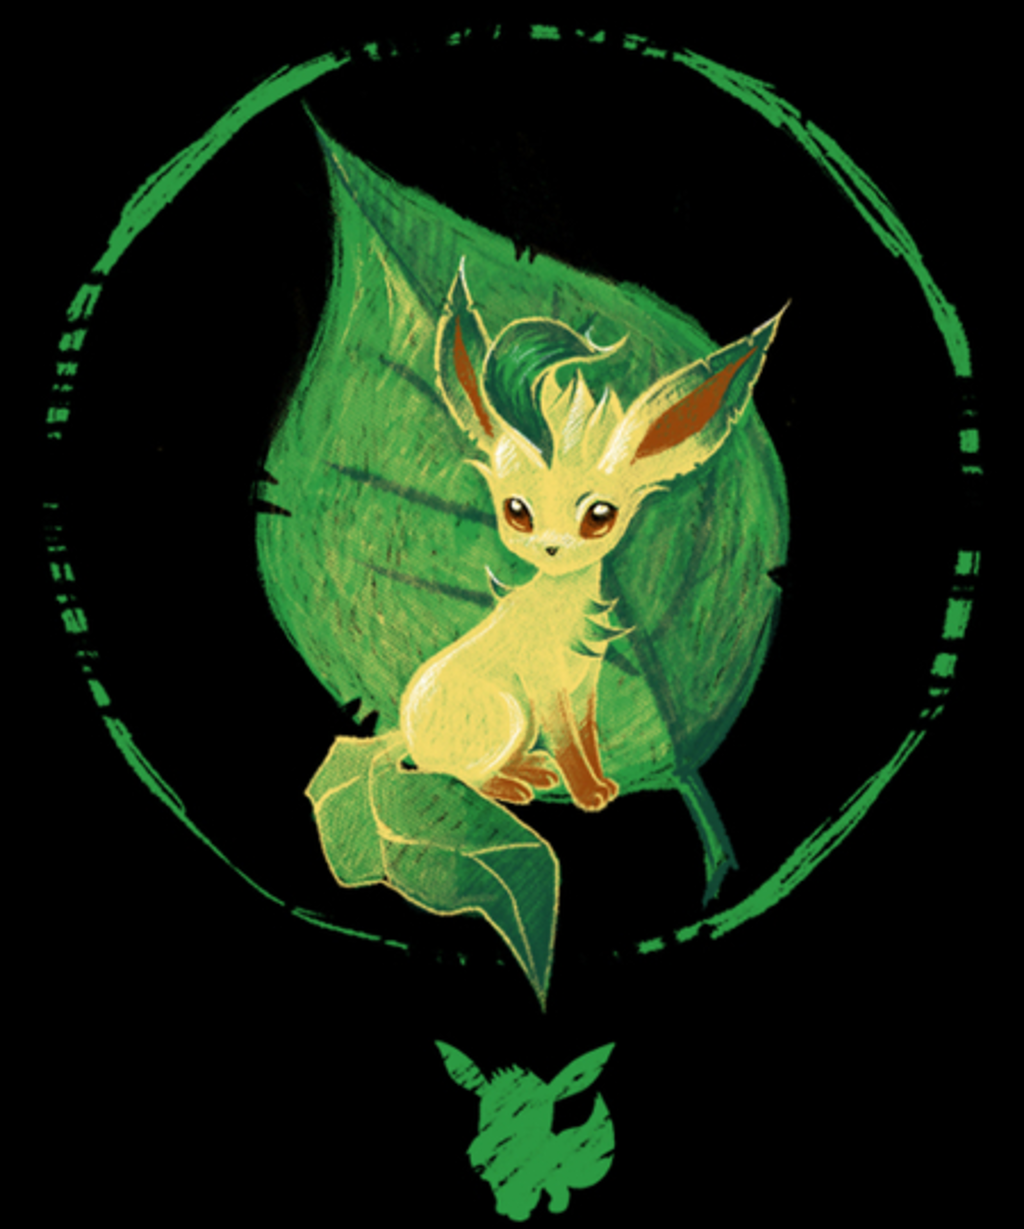 Qwertee: The Leaf